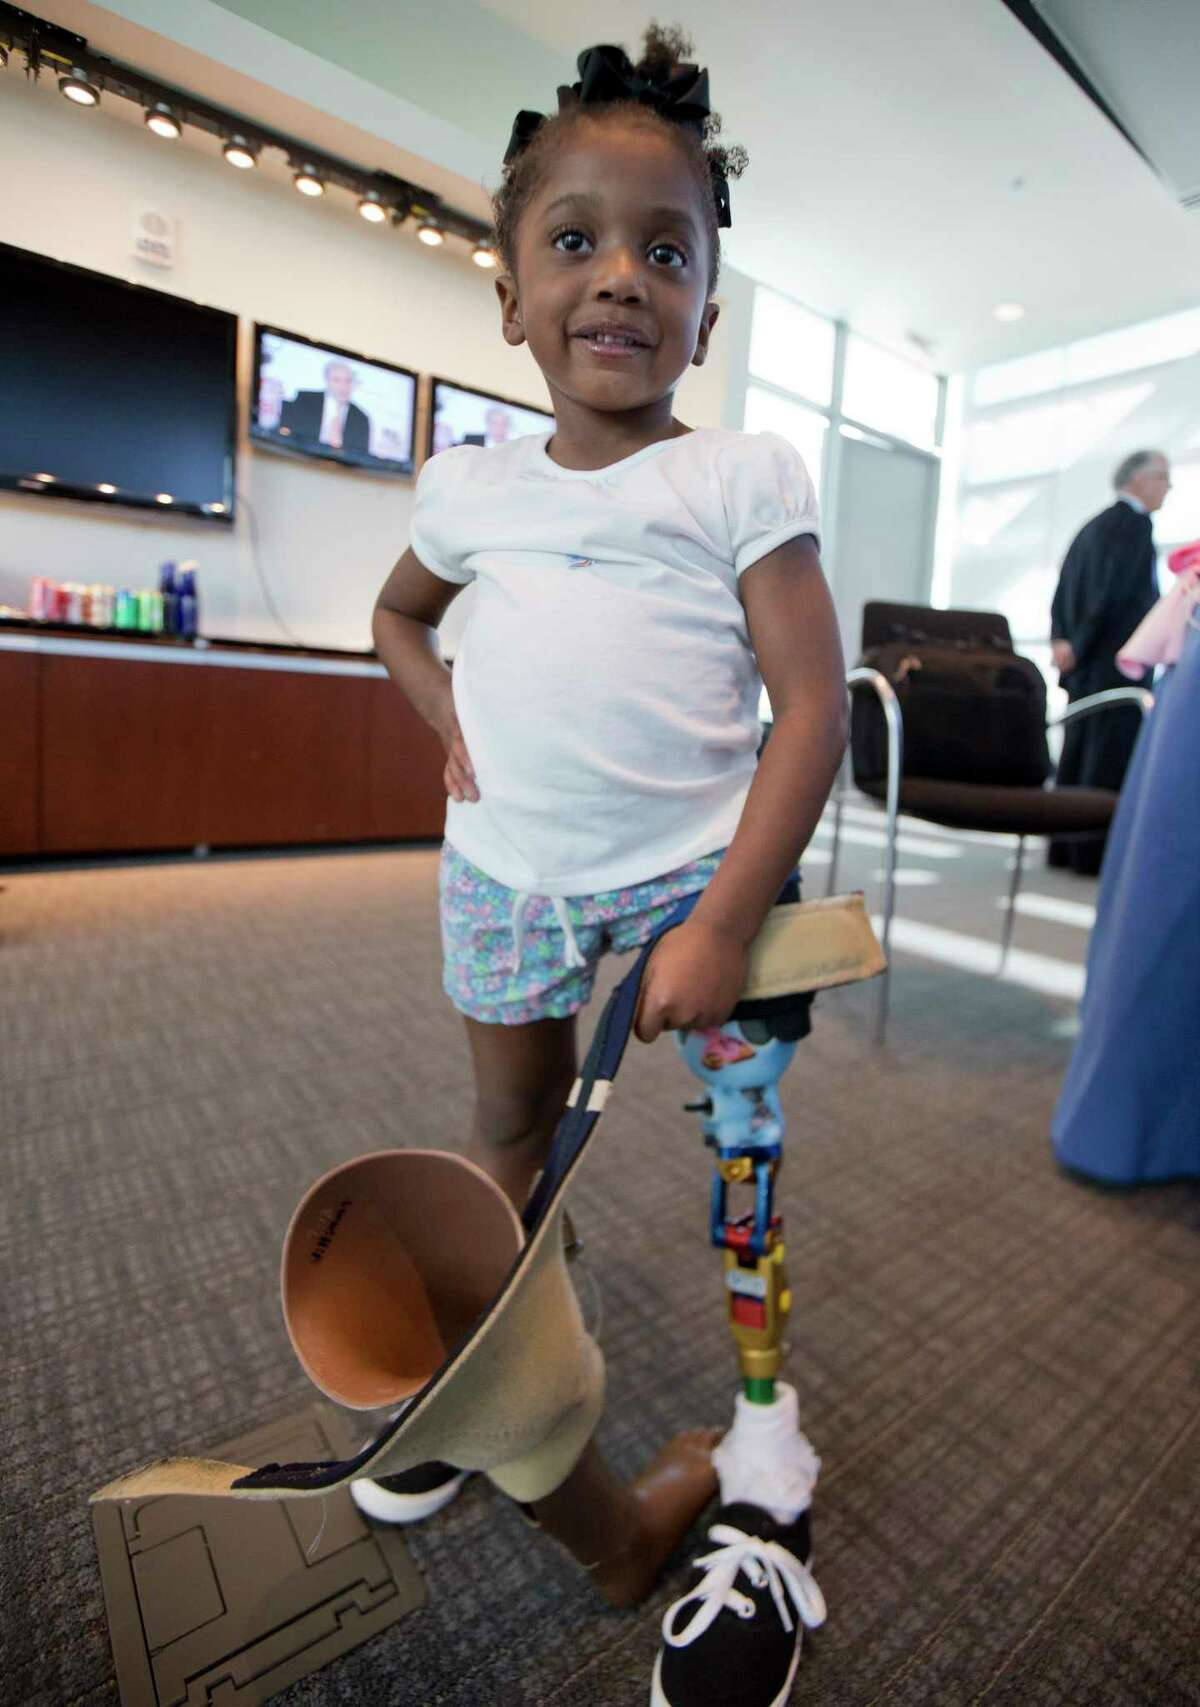 Miyah Williams, 3, holds her old prosthetic leg while showing off a new one in Washington on Oct. 23, 2015 during a meeting on the need for innovative pediatric medical devices hosted by Children's National Health System.